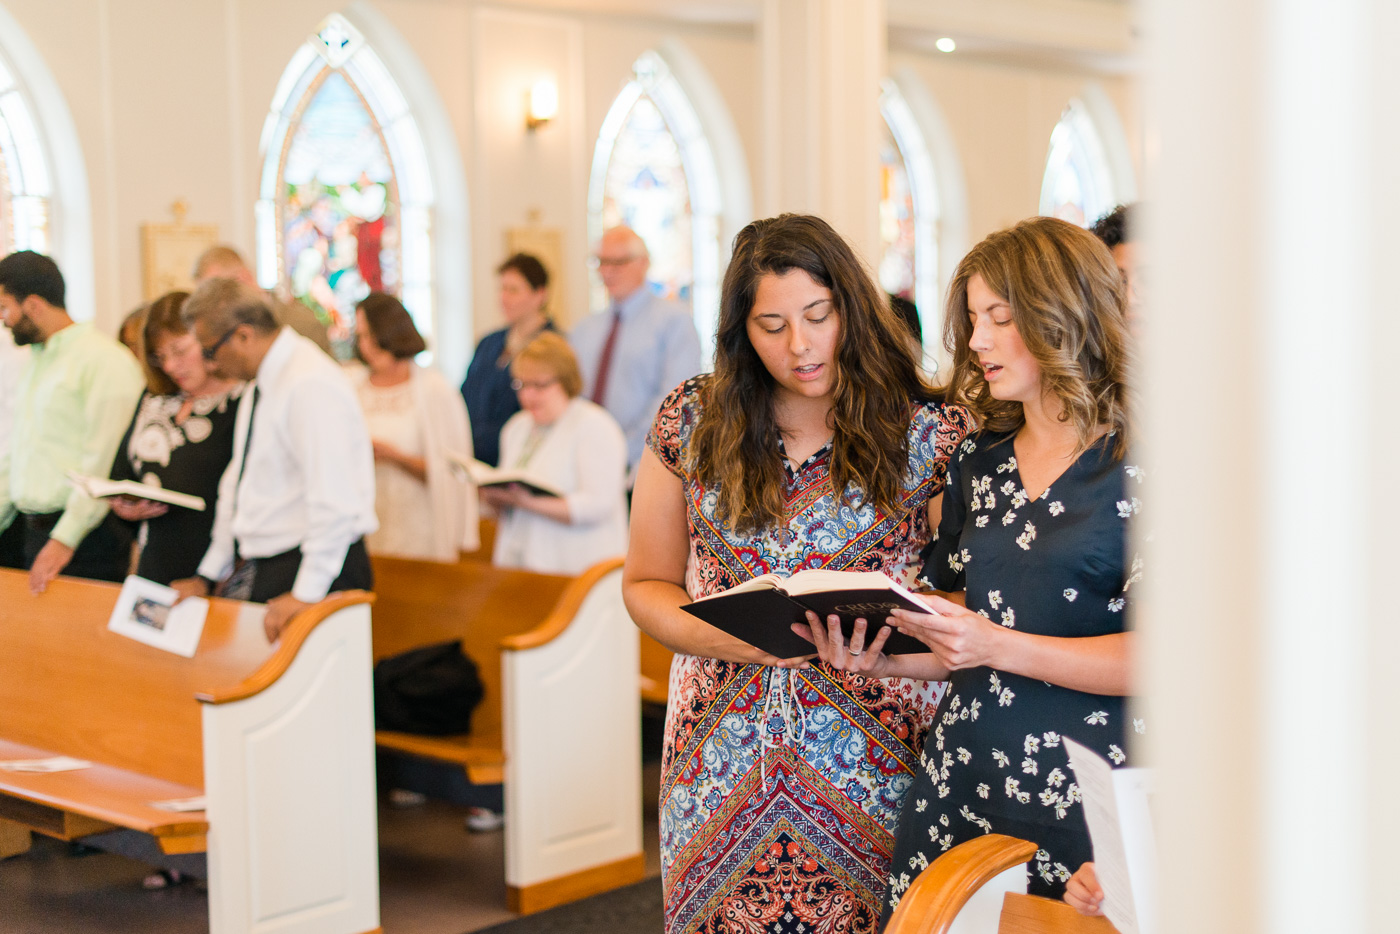 Emily-Annette-Photography-Catholic-Consecrated-Commitment-Mass-Event-Diocese-Arlington-Fairfax-Photographer-Youth-Apostles-August-2018-01.jpg